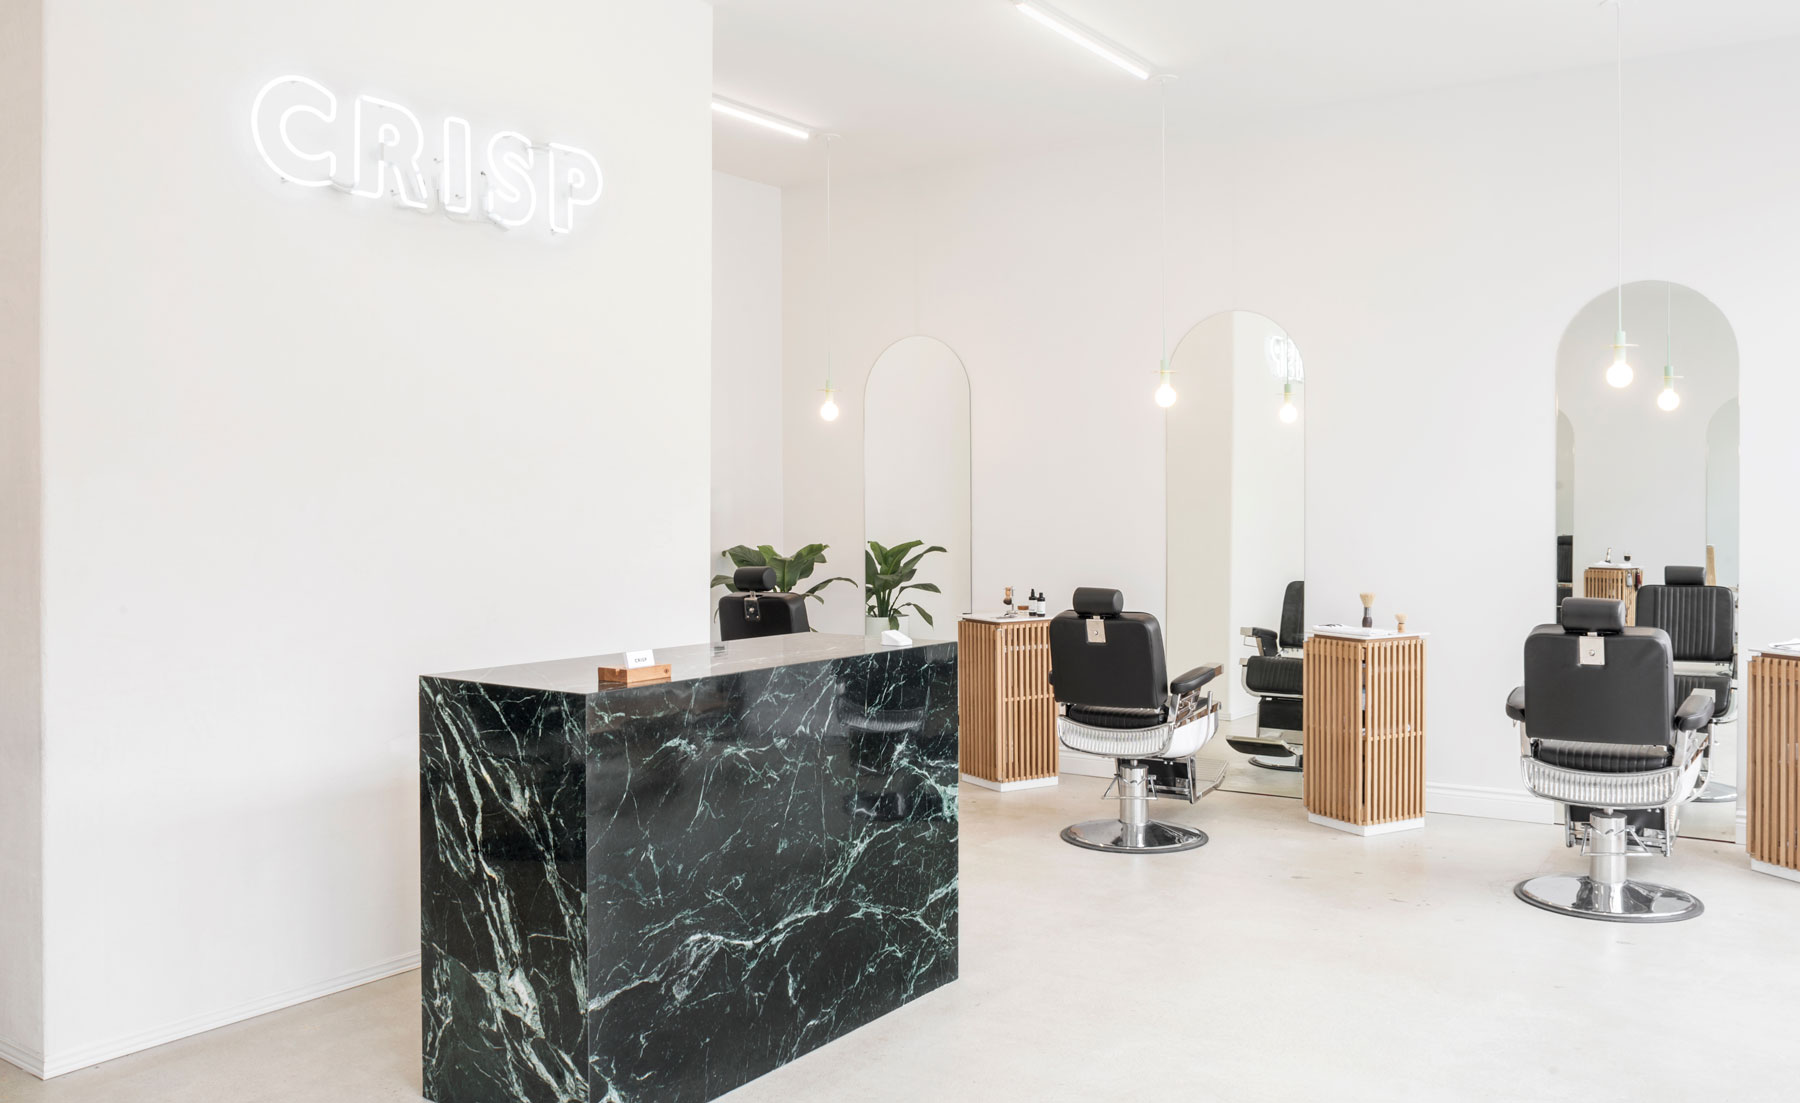 Montreal's Architectural Barber Shop Is A Minimalist Dream